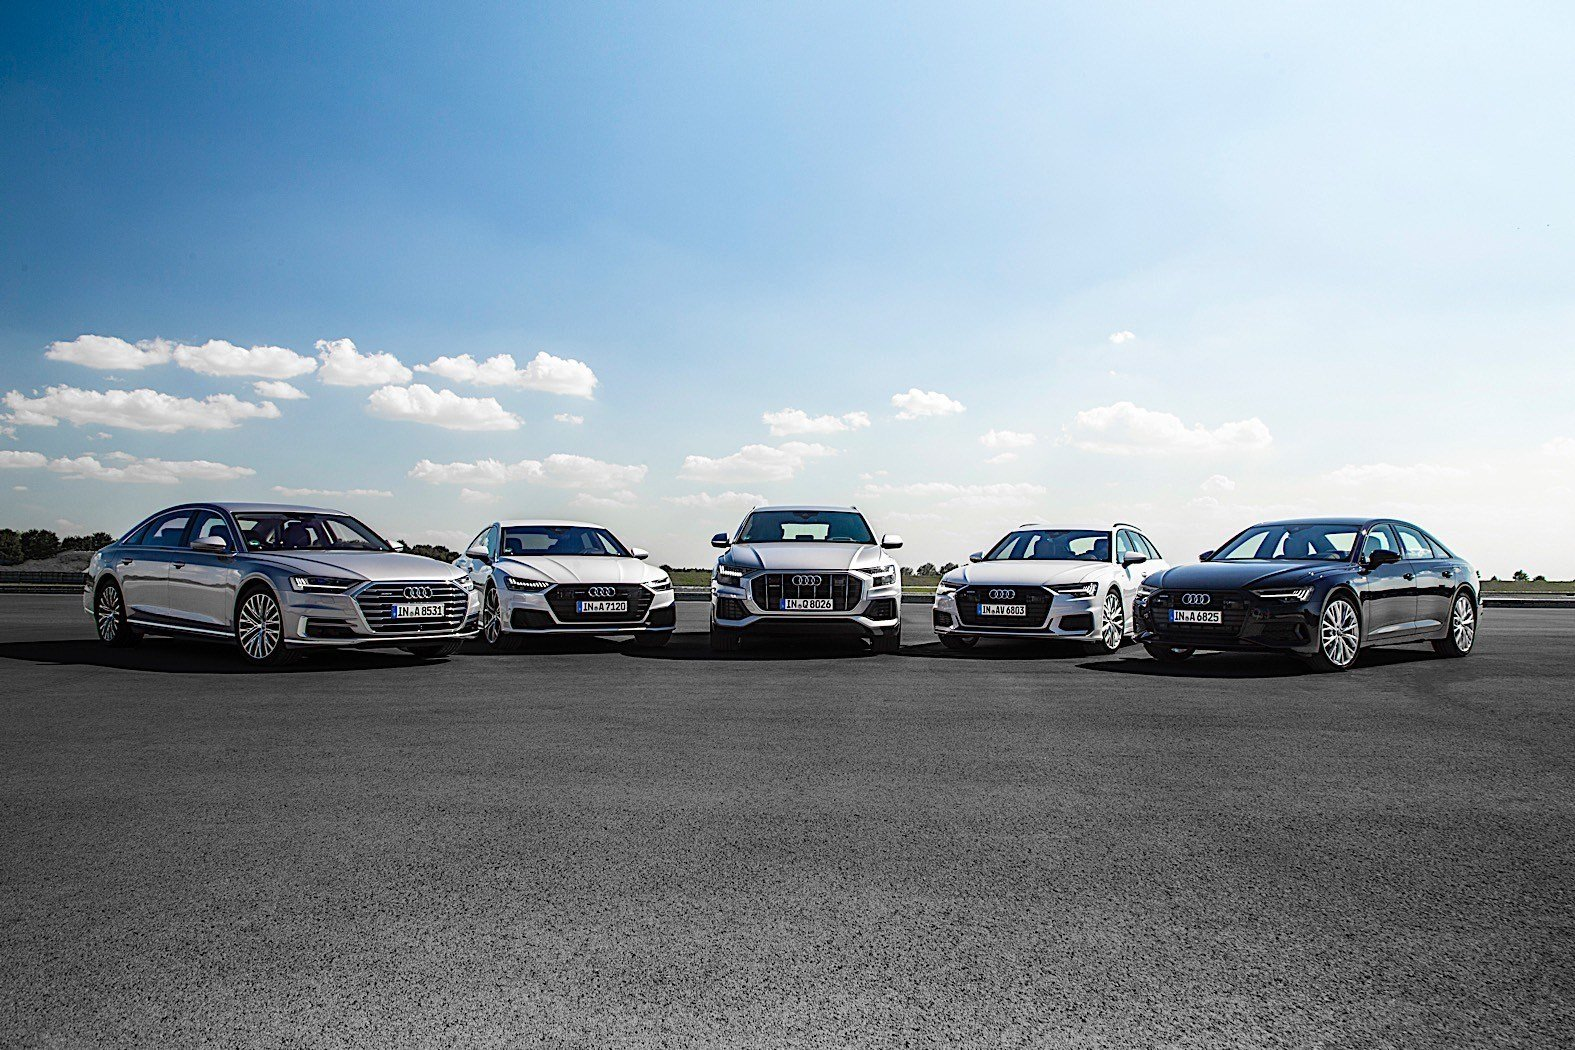 Latest Audi Full Size Cars Line Up For Photoshoot Autoevolution Free Download